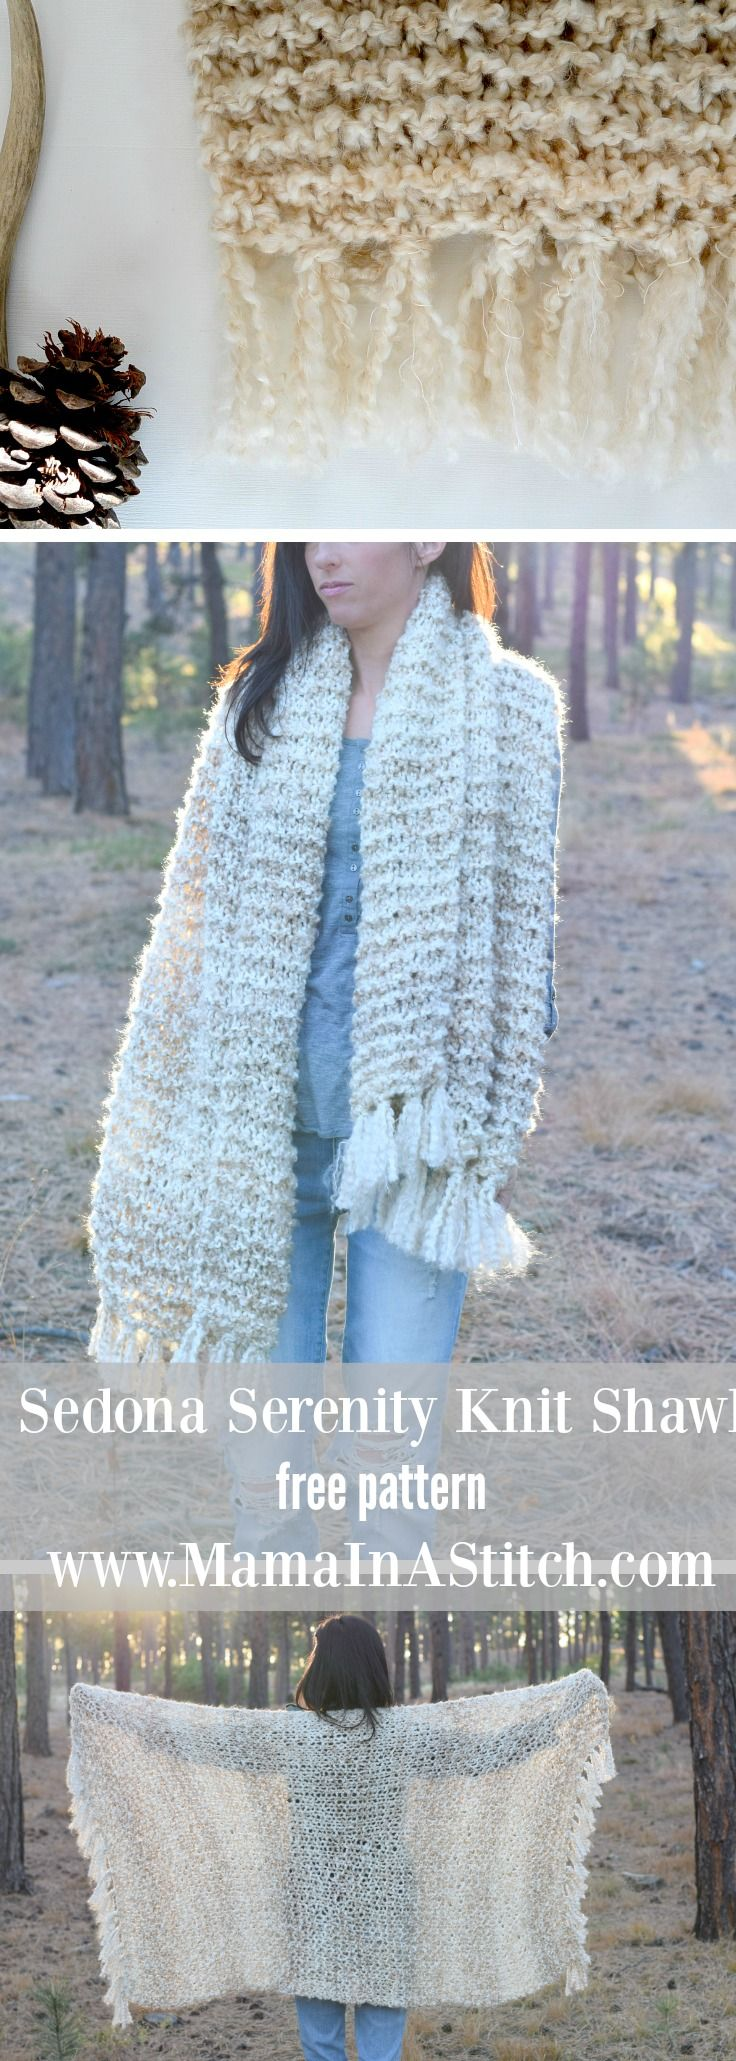 306 best knitting accessories for women images on pinterest free knitting pattern serenity shawl by mama in a stitch bankloansurffo Images